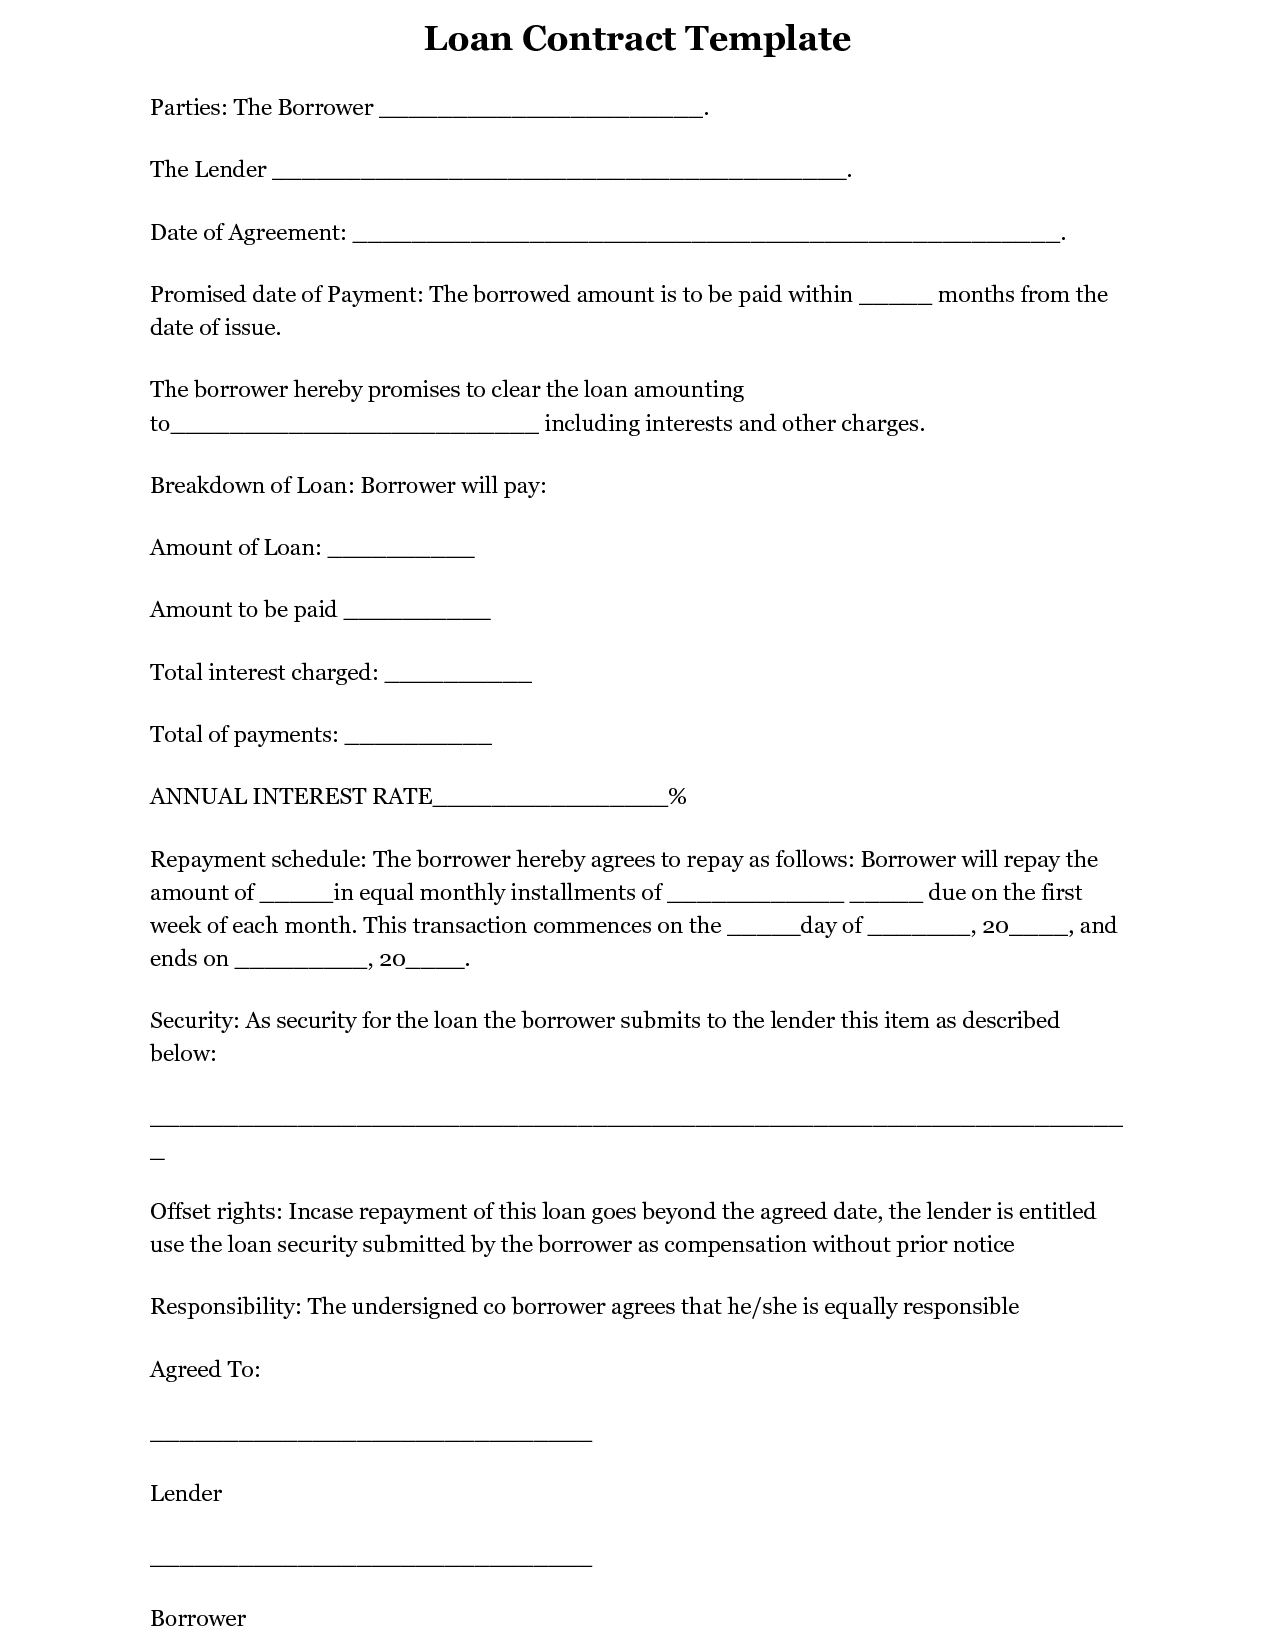 Printable Sample Loan Template Form Legal Template Online - Simple agreement template